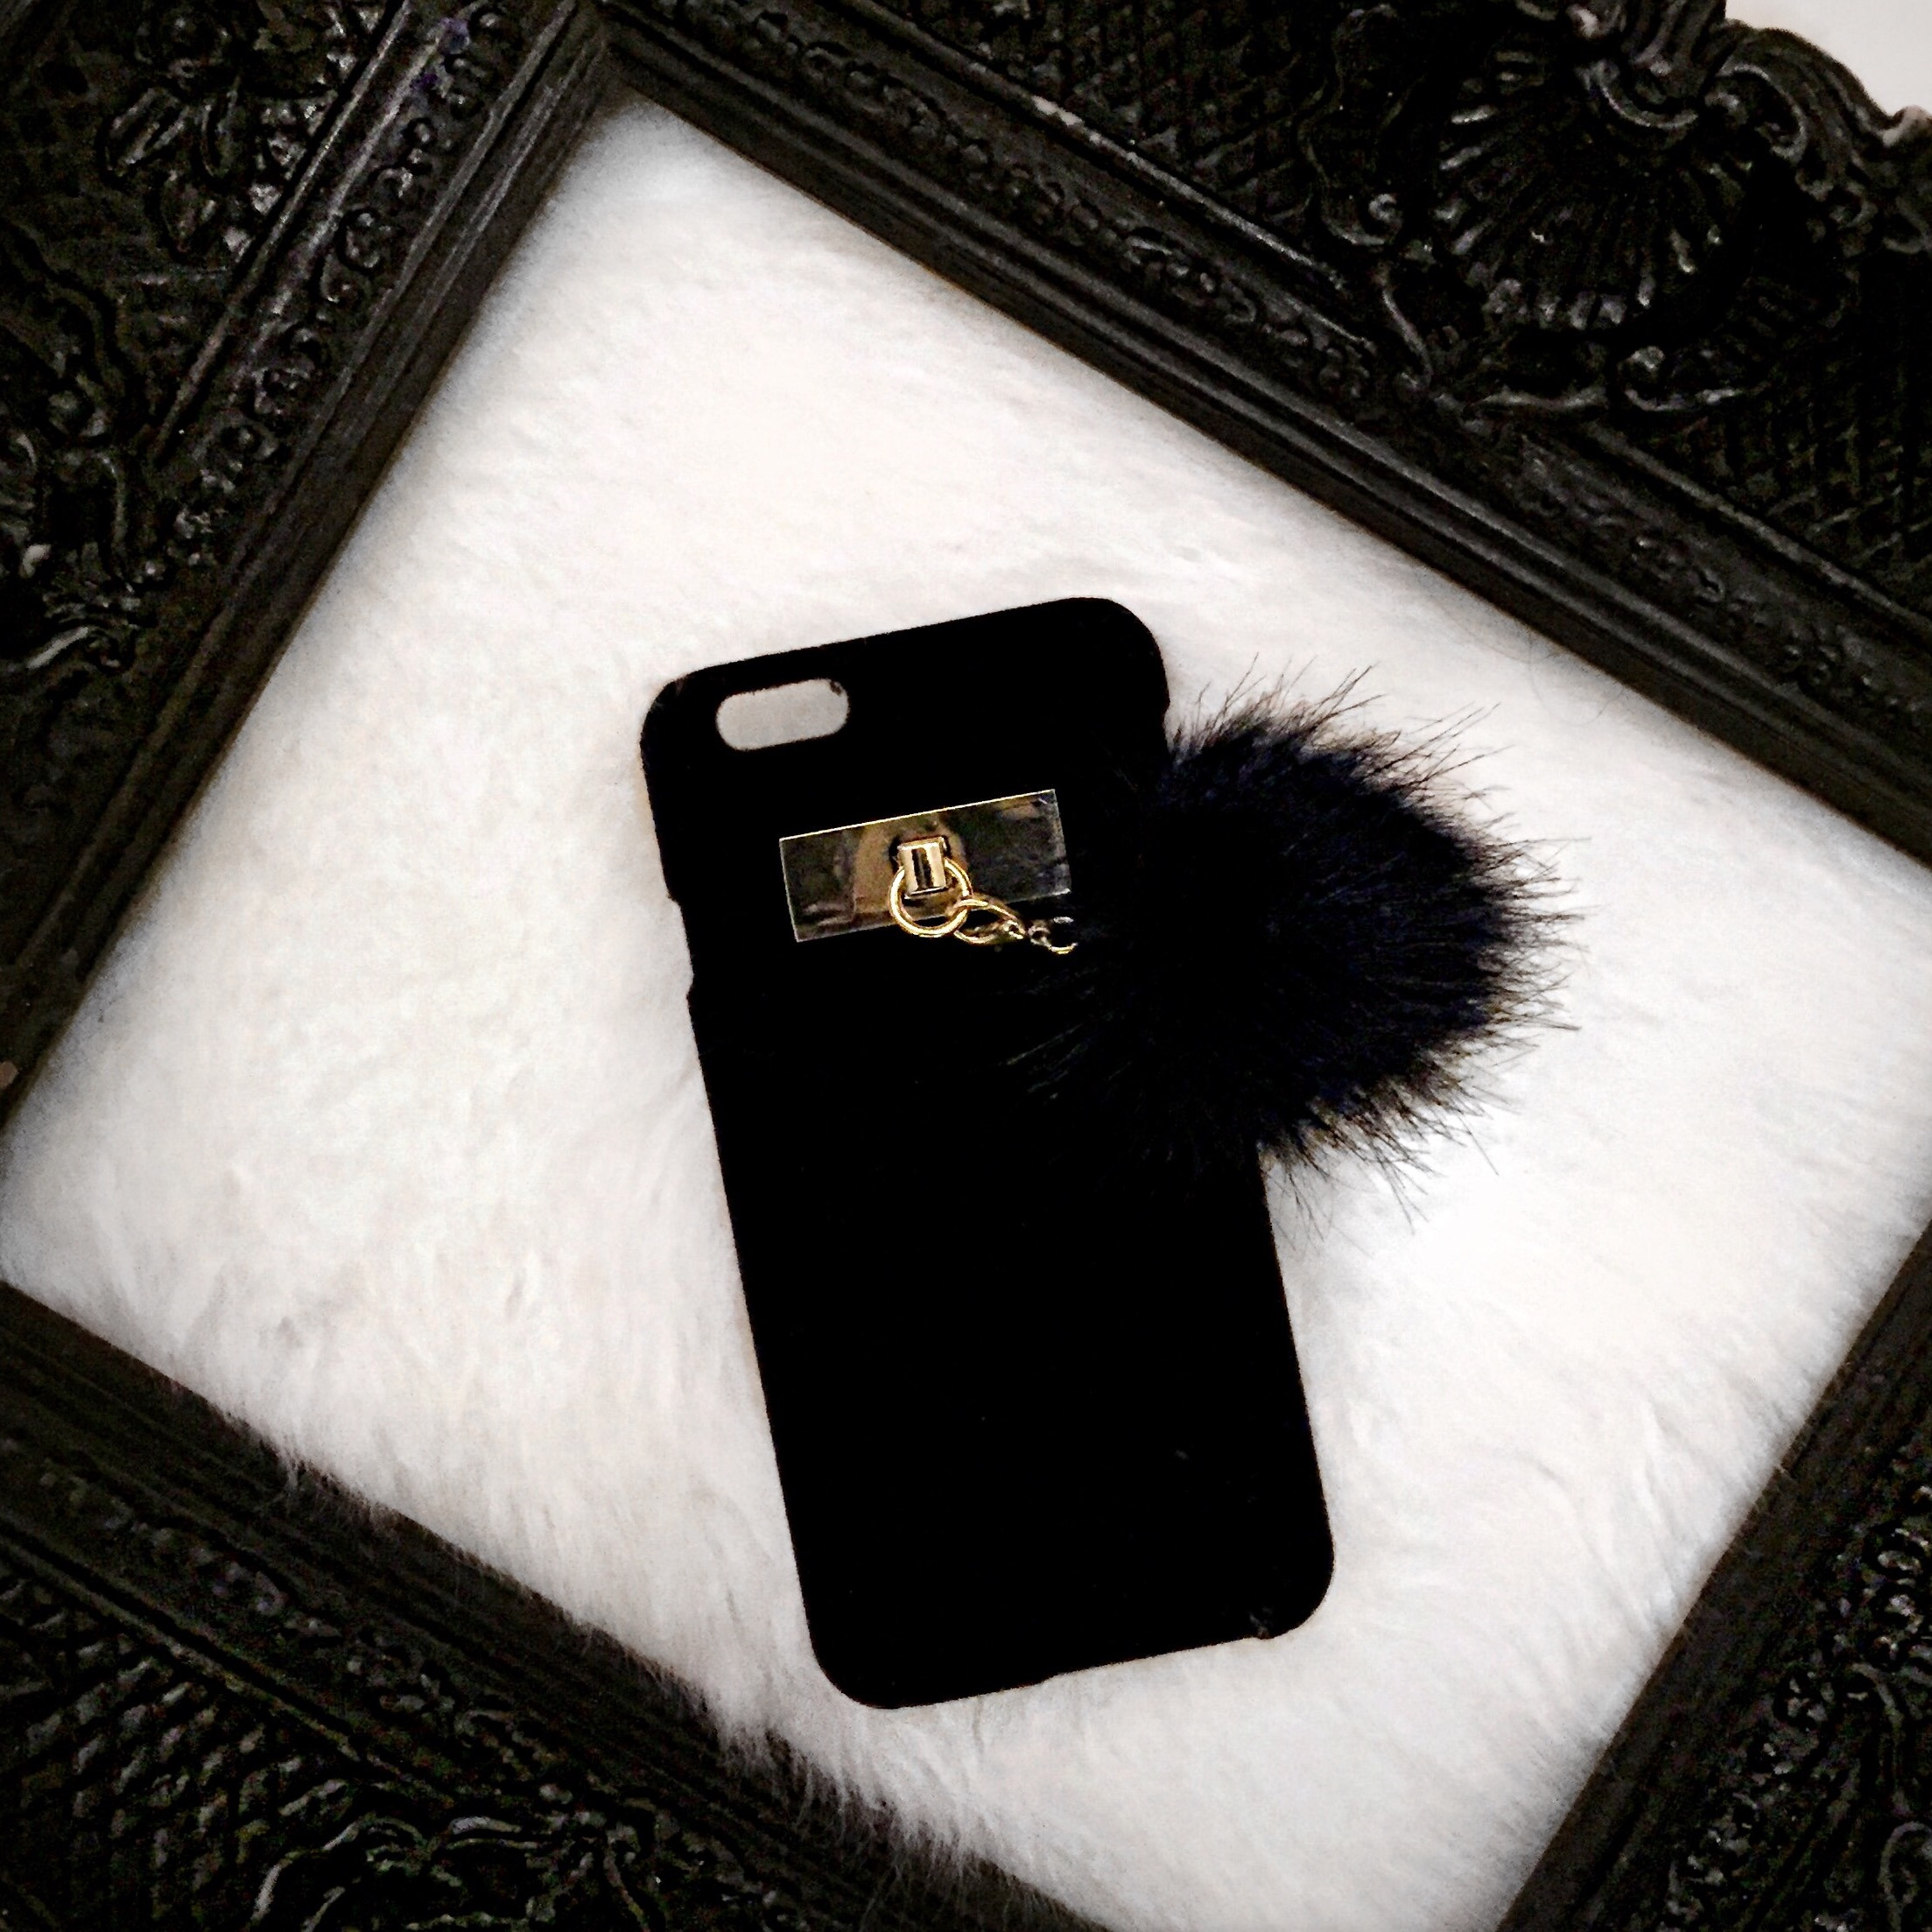 HM POM IPHONE 6 PHONE CASE.jpg